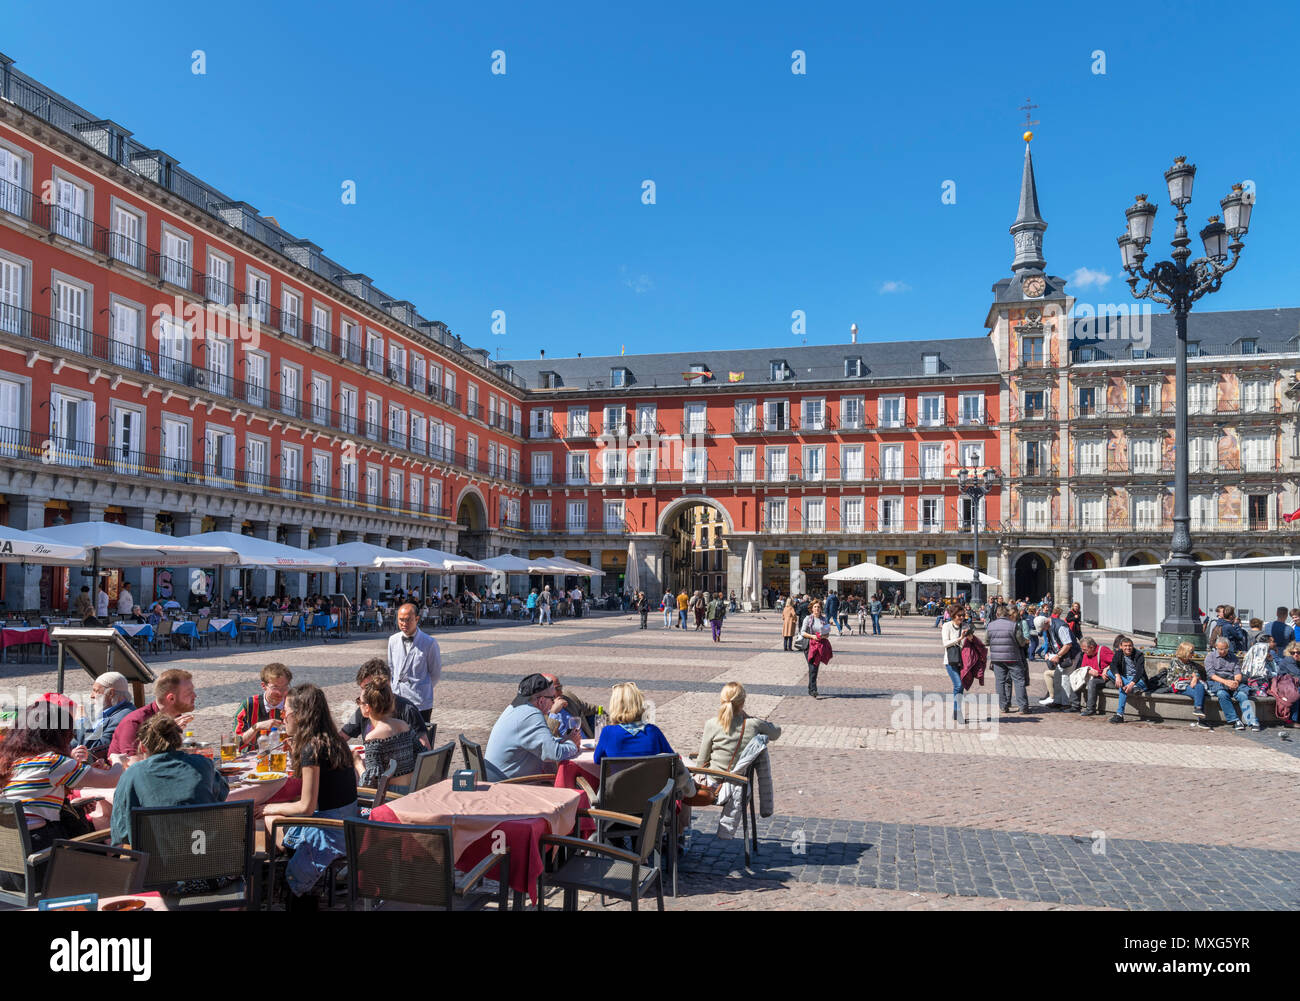 Cafés und Restaurants am Plaza Mayor, Madrid, Spanien Stockbild